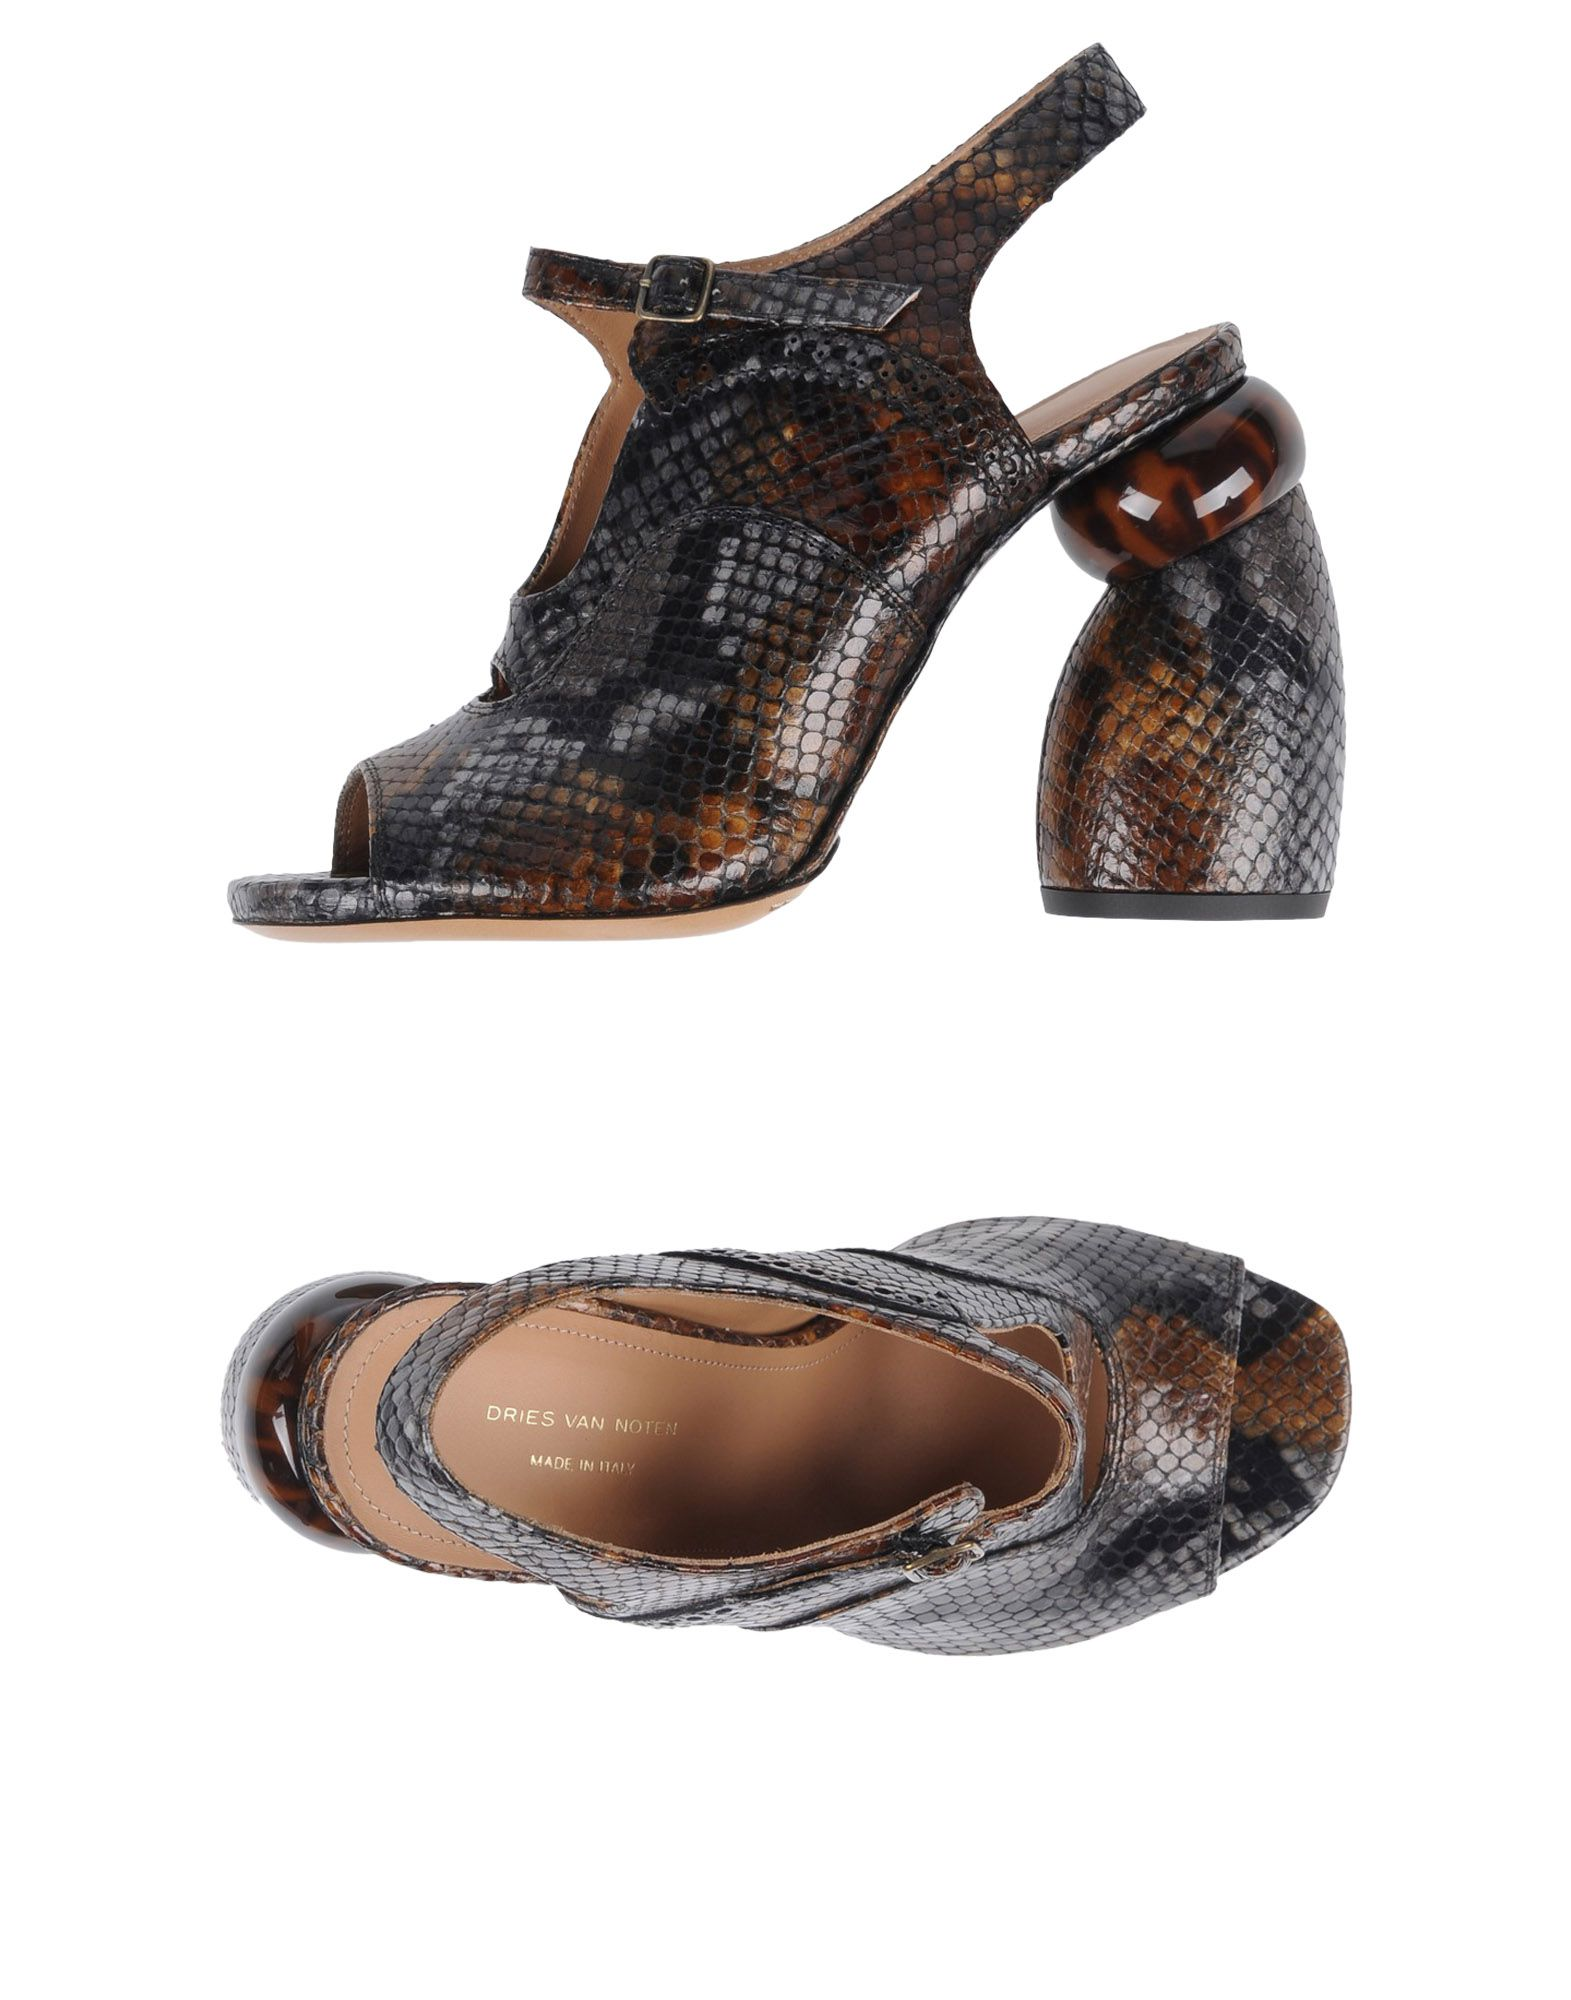 Dries Van Noten Sandals Noten - Women Dries Van Noten Sandals Sandals online on  Australia - 11465745WO 4a8897